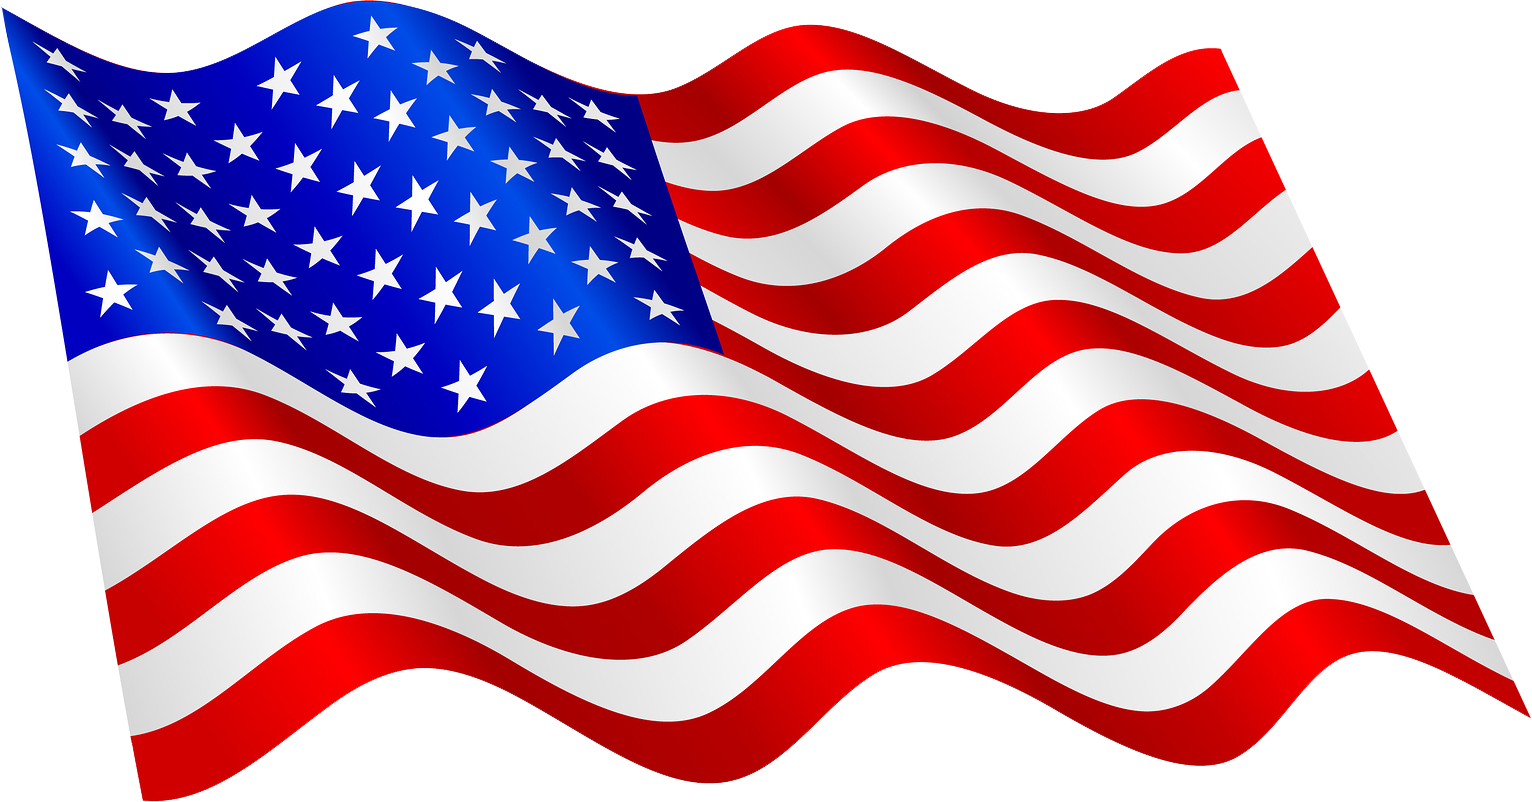 Download America Flag PNG Image for Free.